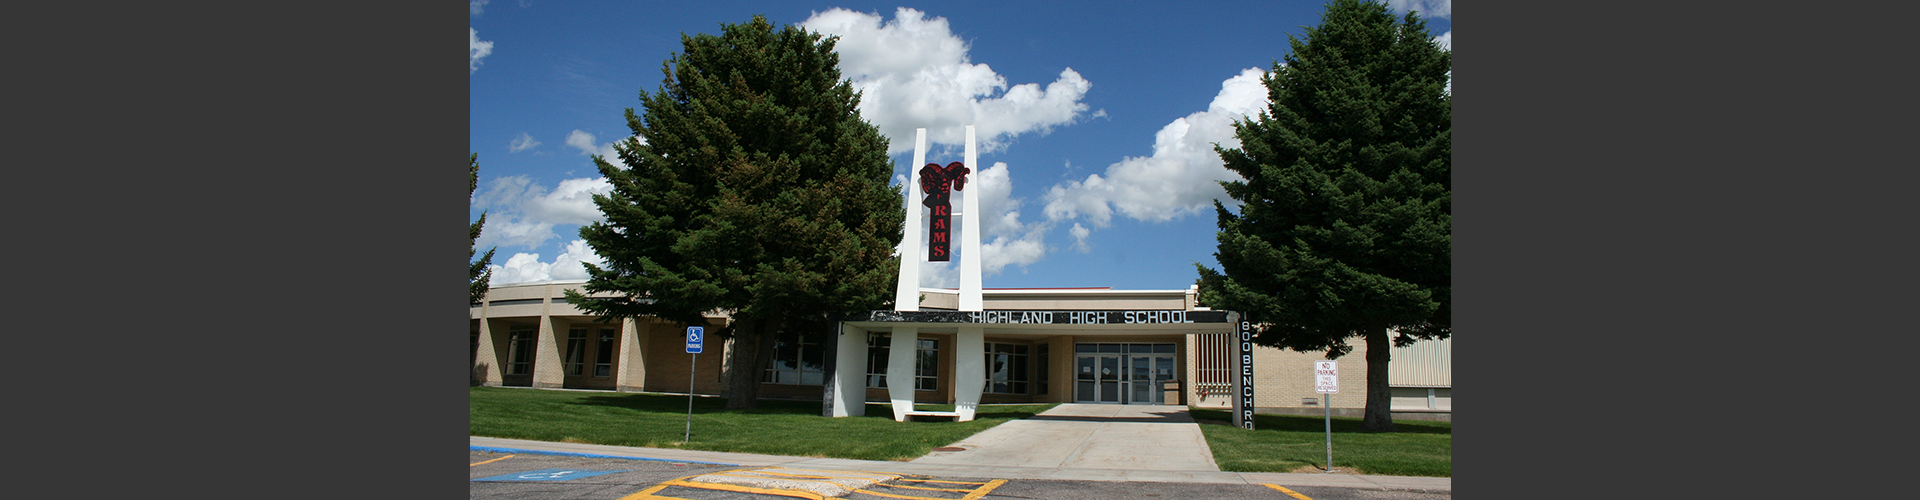 Picture of the front of Highland High School.